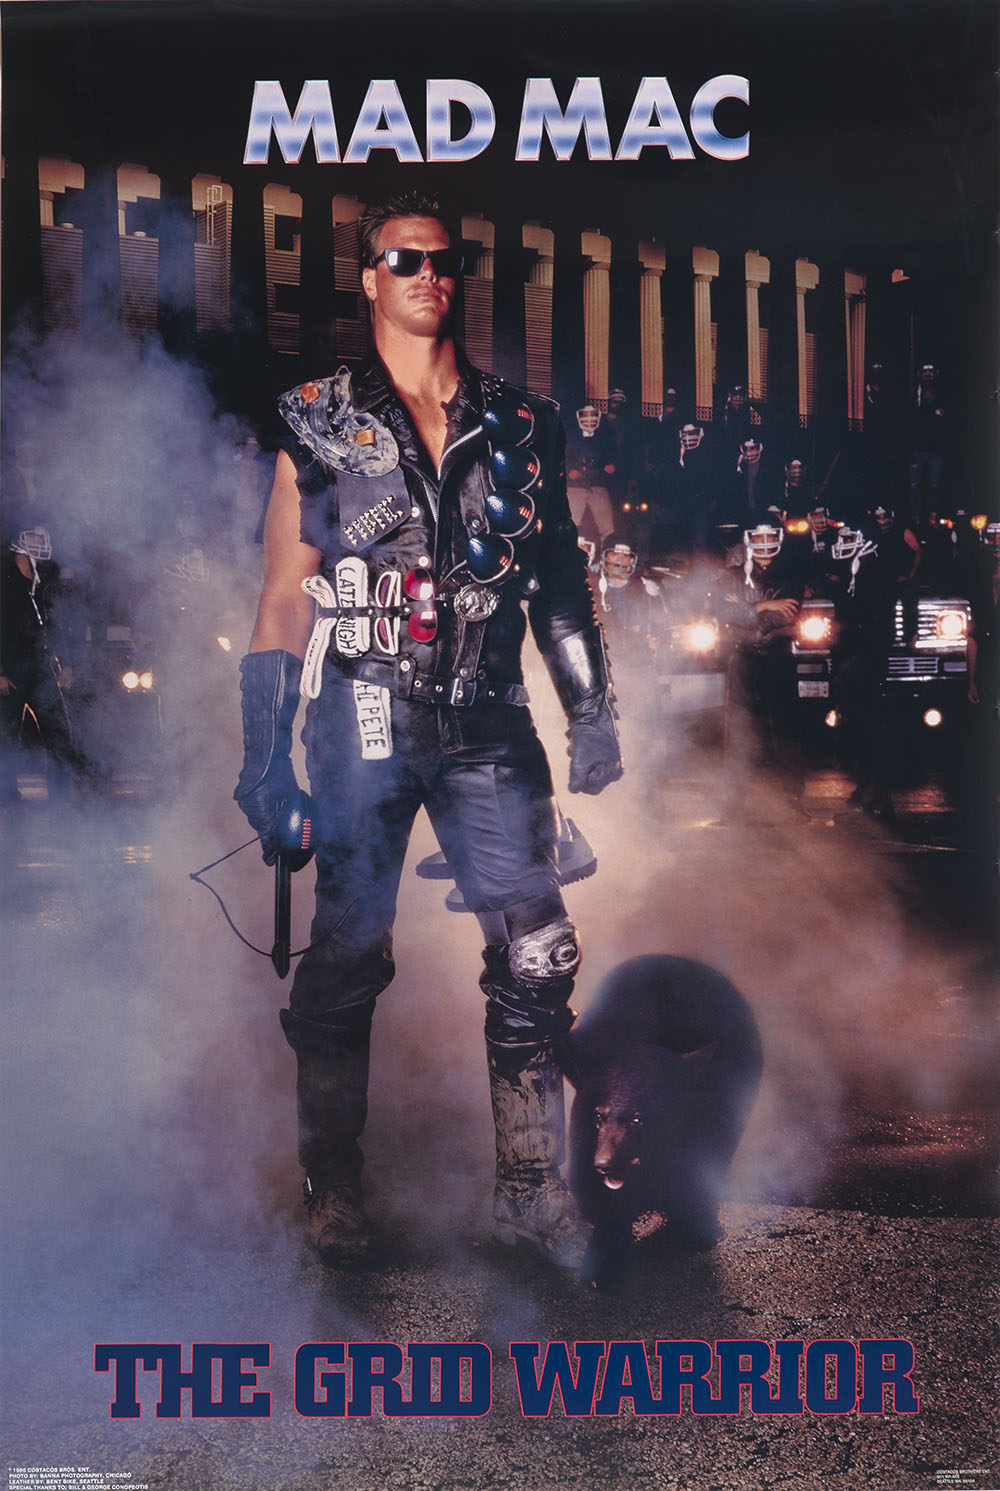 Jim McMahon as Mad Mac